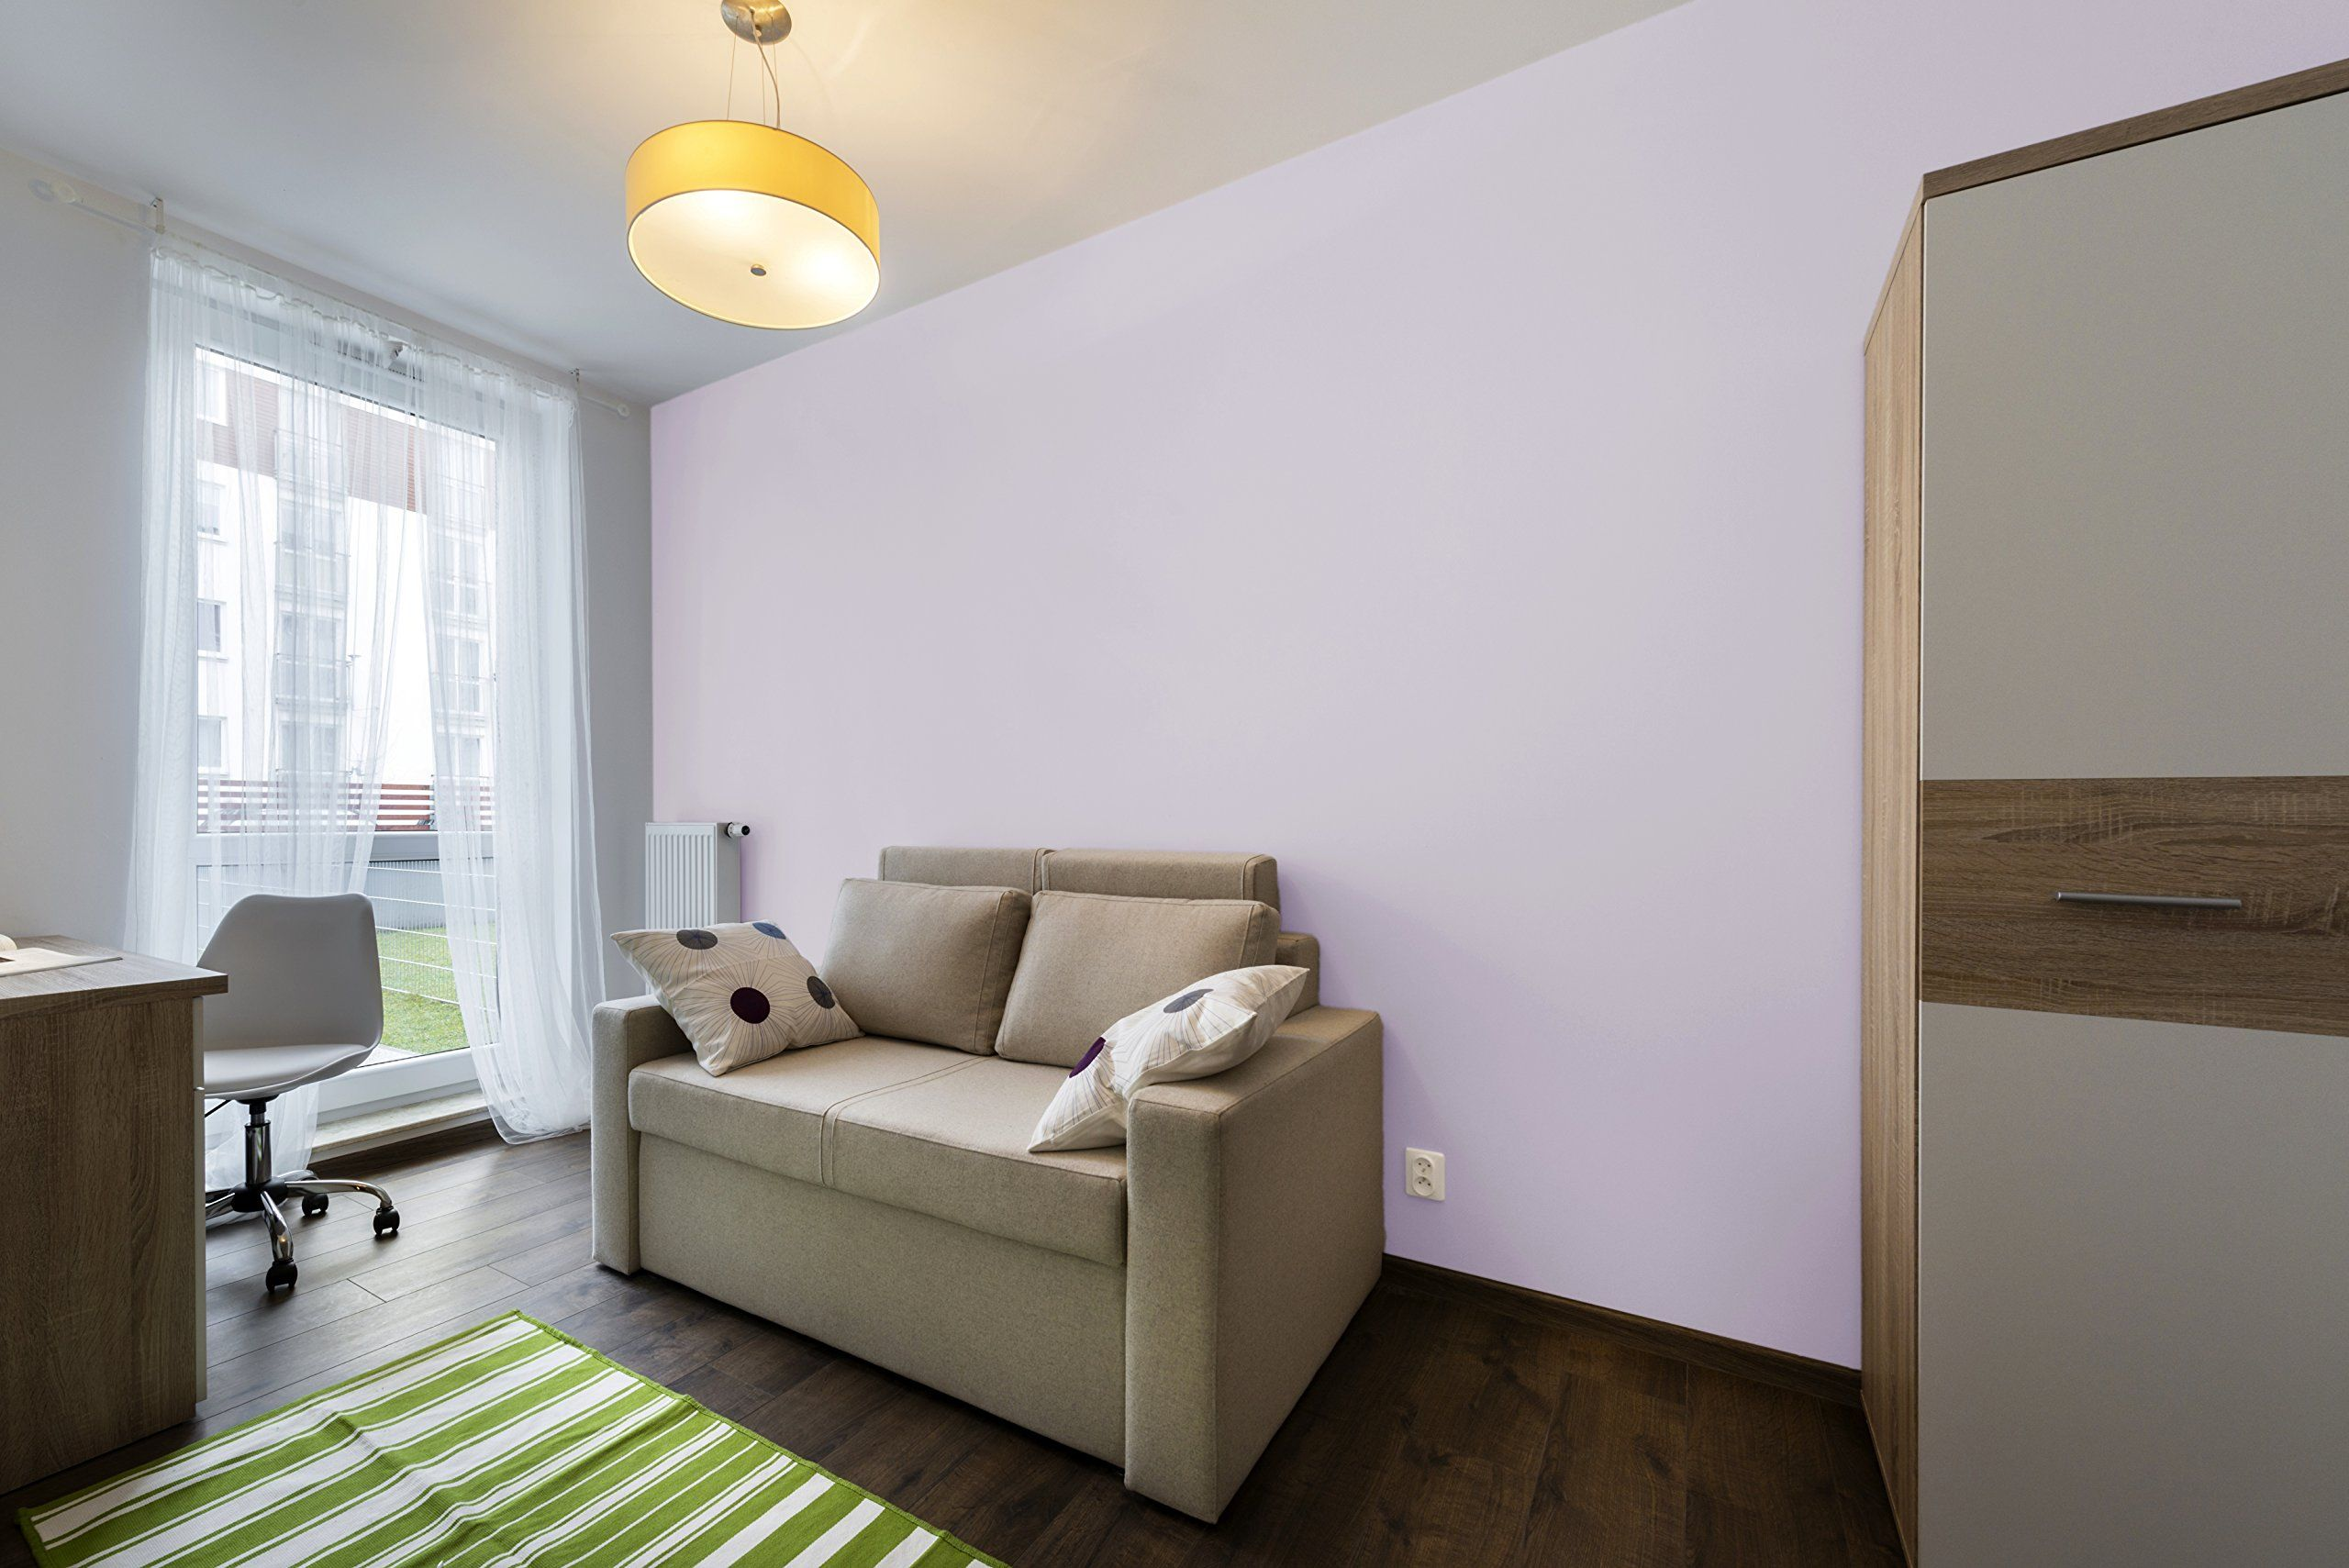 Tempaint Removable Peel And Stick Wallpaper Stardust Purple Amazon Com Willow Green Apartment Living Peel And Stick Wallpaper